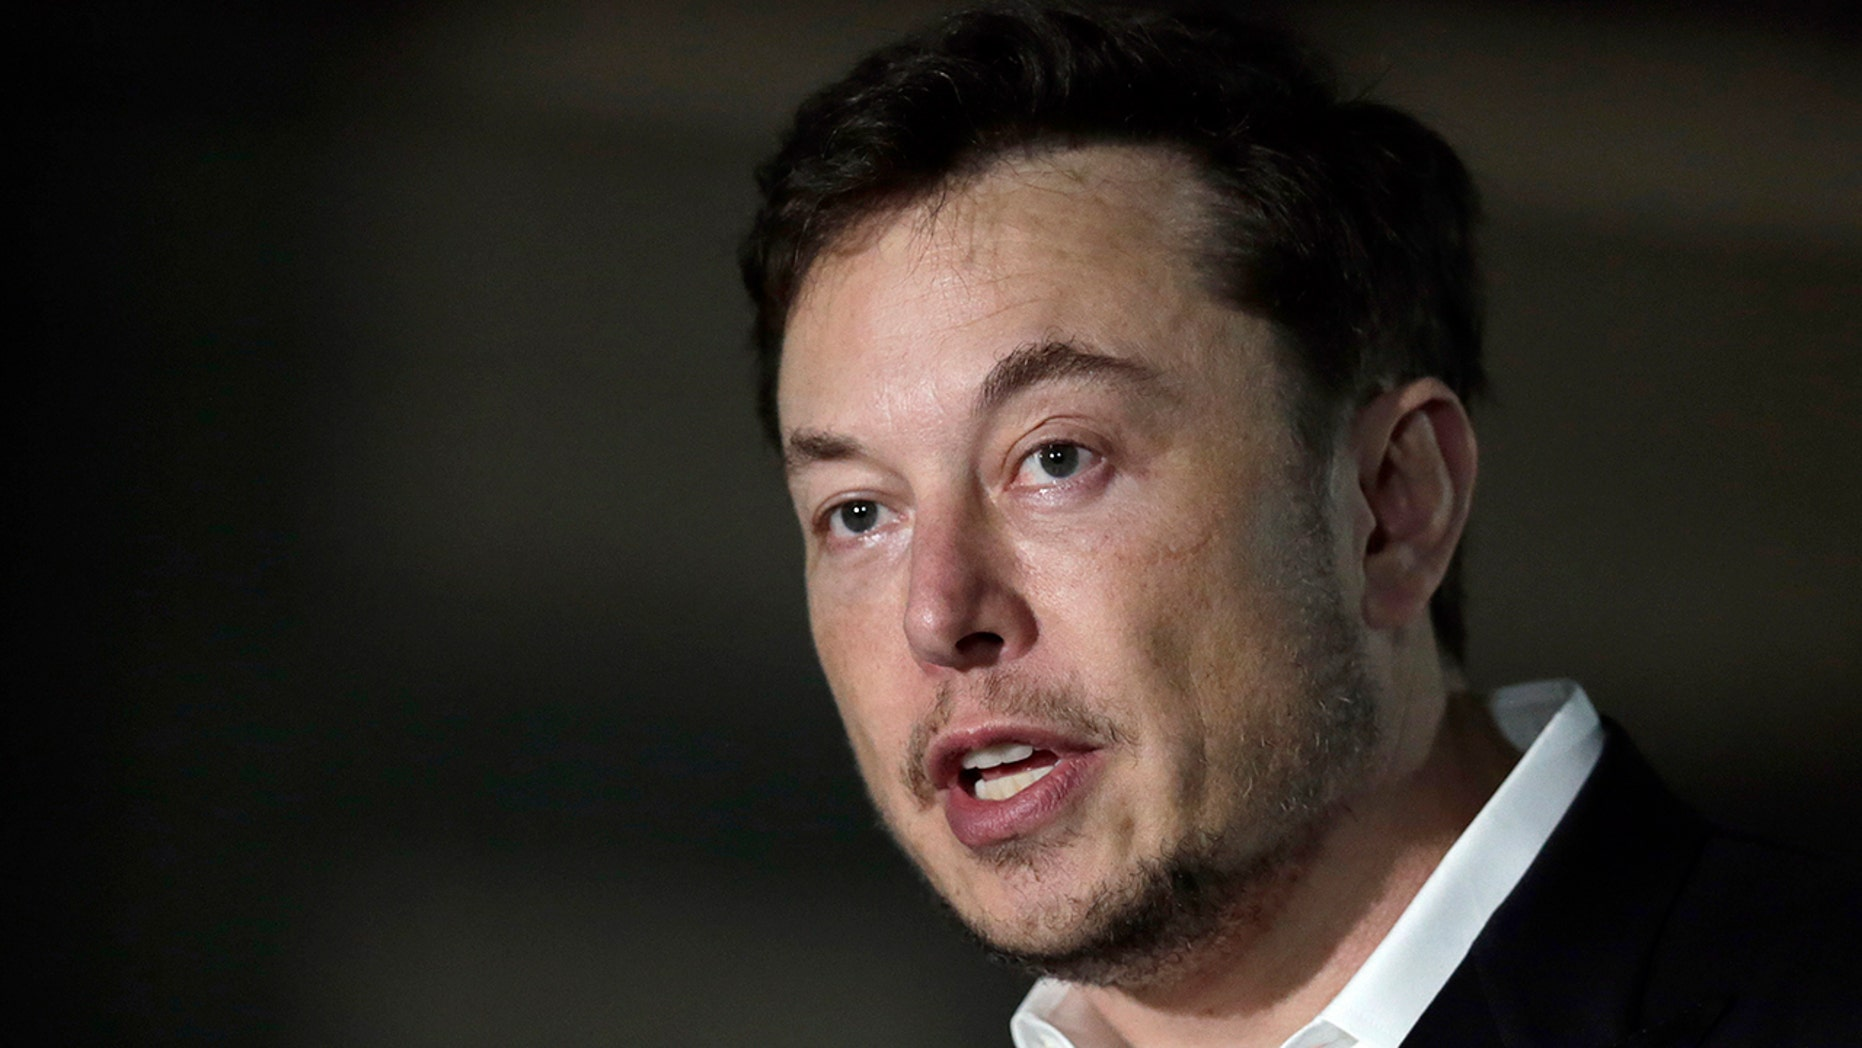 FILE - In this Thursday, June 14, 2018 file photo, Tesla CEO and founder of the Boring Company Elon Musk speaks at a news conference, in Chicago. On Tuesday, July 19, 2018, The Associated Press has found that stories circulating on the internet that Musk announced plans to leave Tesla to start a digital currency company are untrue. (AP Photo/Kiichiro Sato, File)